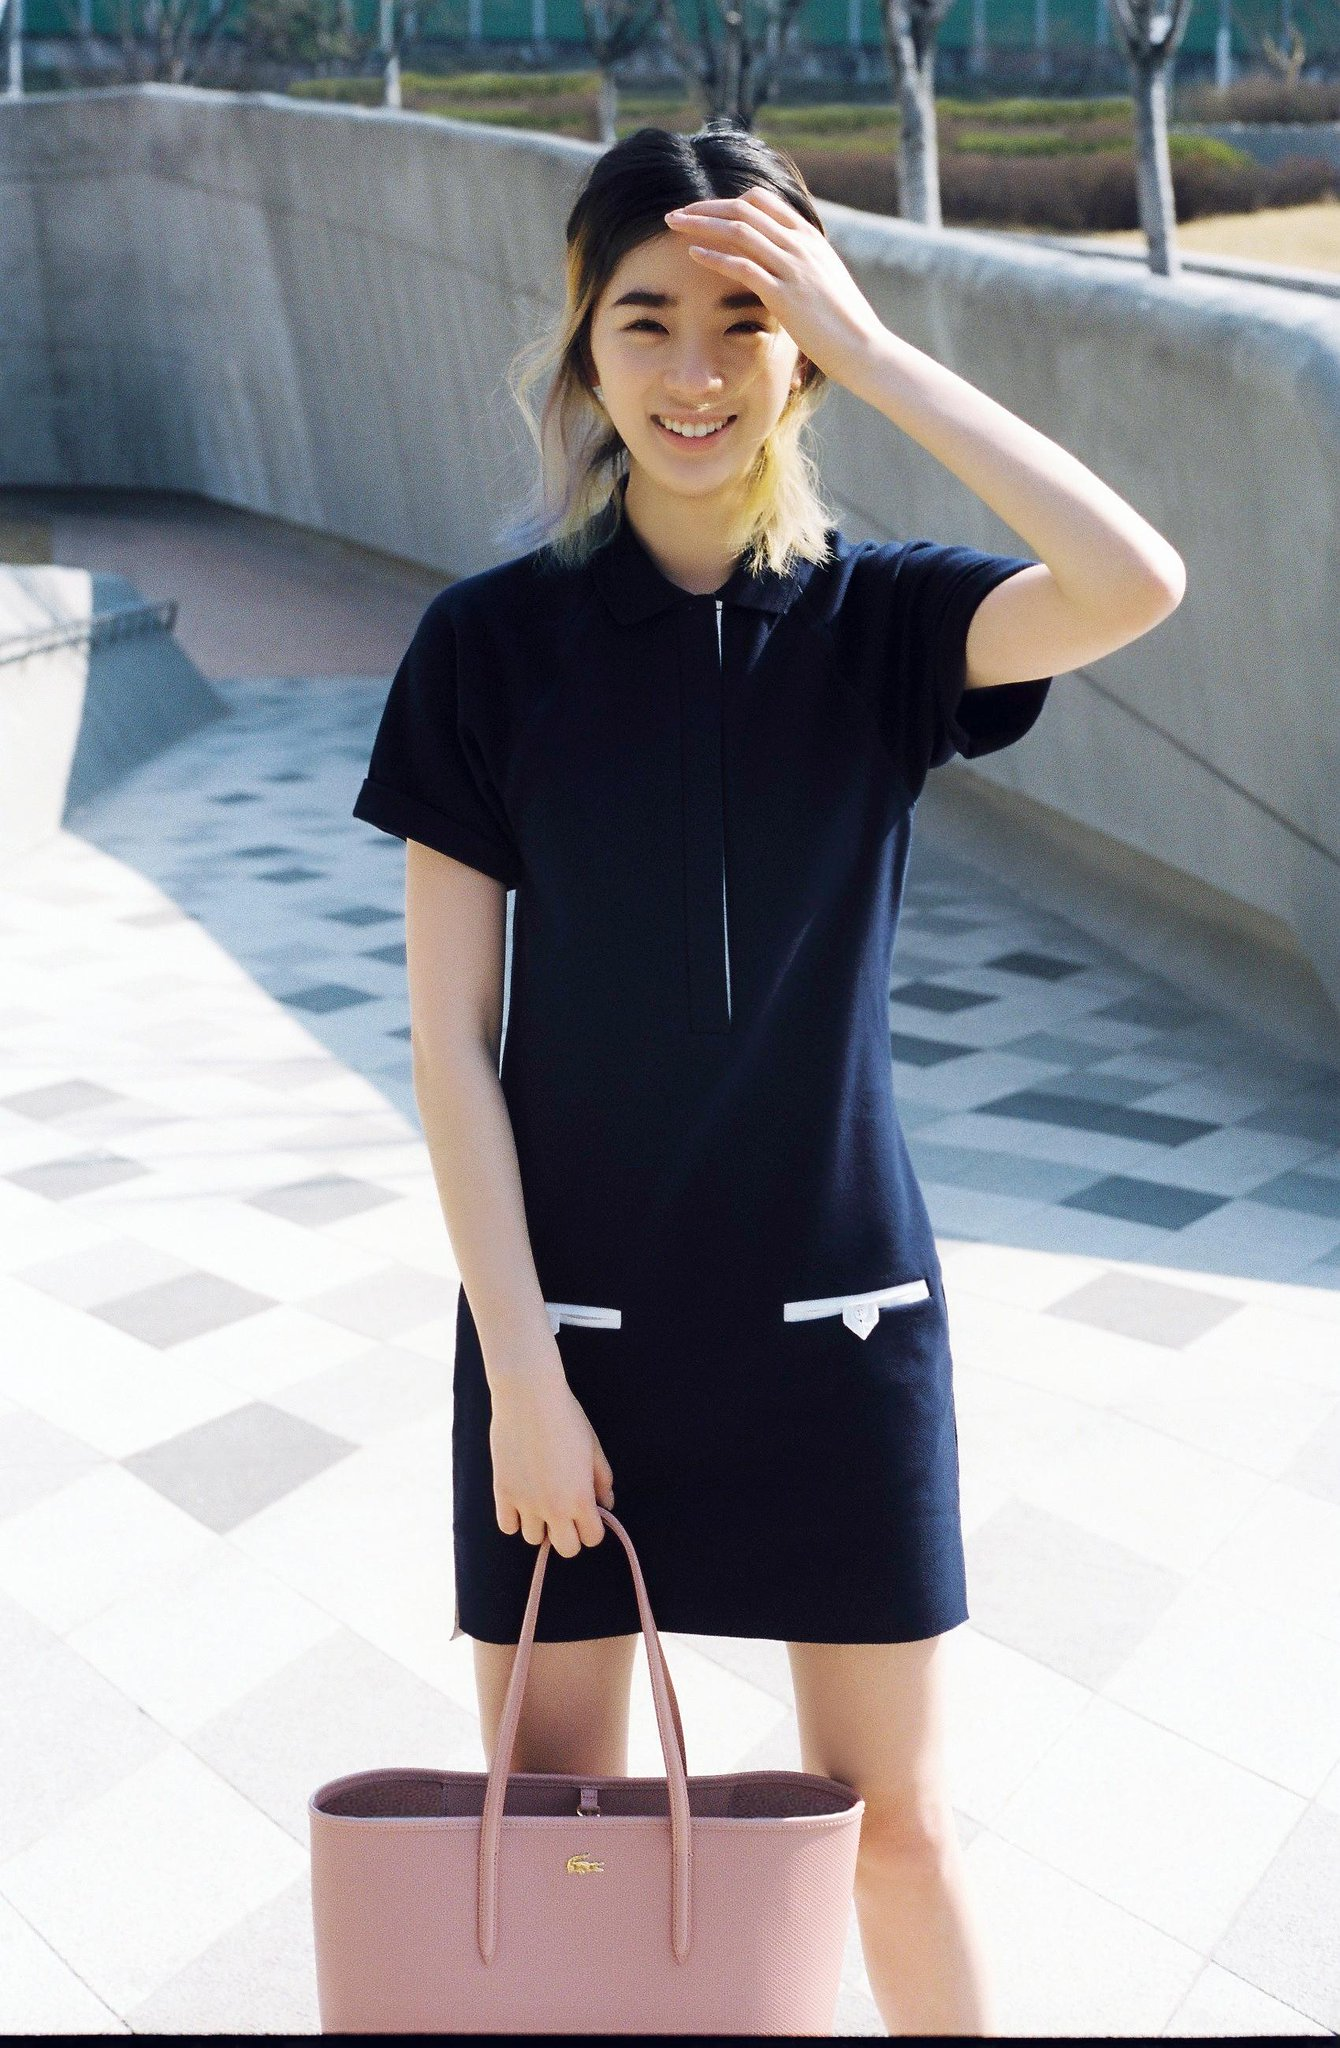 Blogger & model @Ireneisgood is all smiles in our Lacoste polo dress. http://t.co/zwVBabqkF8 #MyLacostePolo http://t.co/6Ep5Bl1TUt